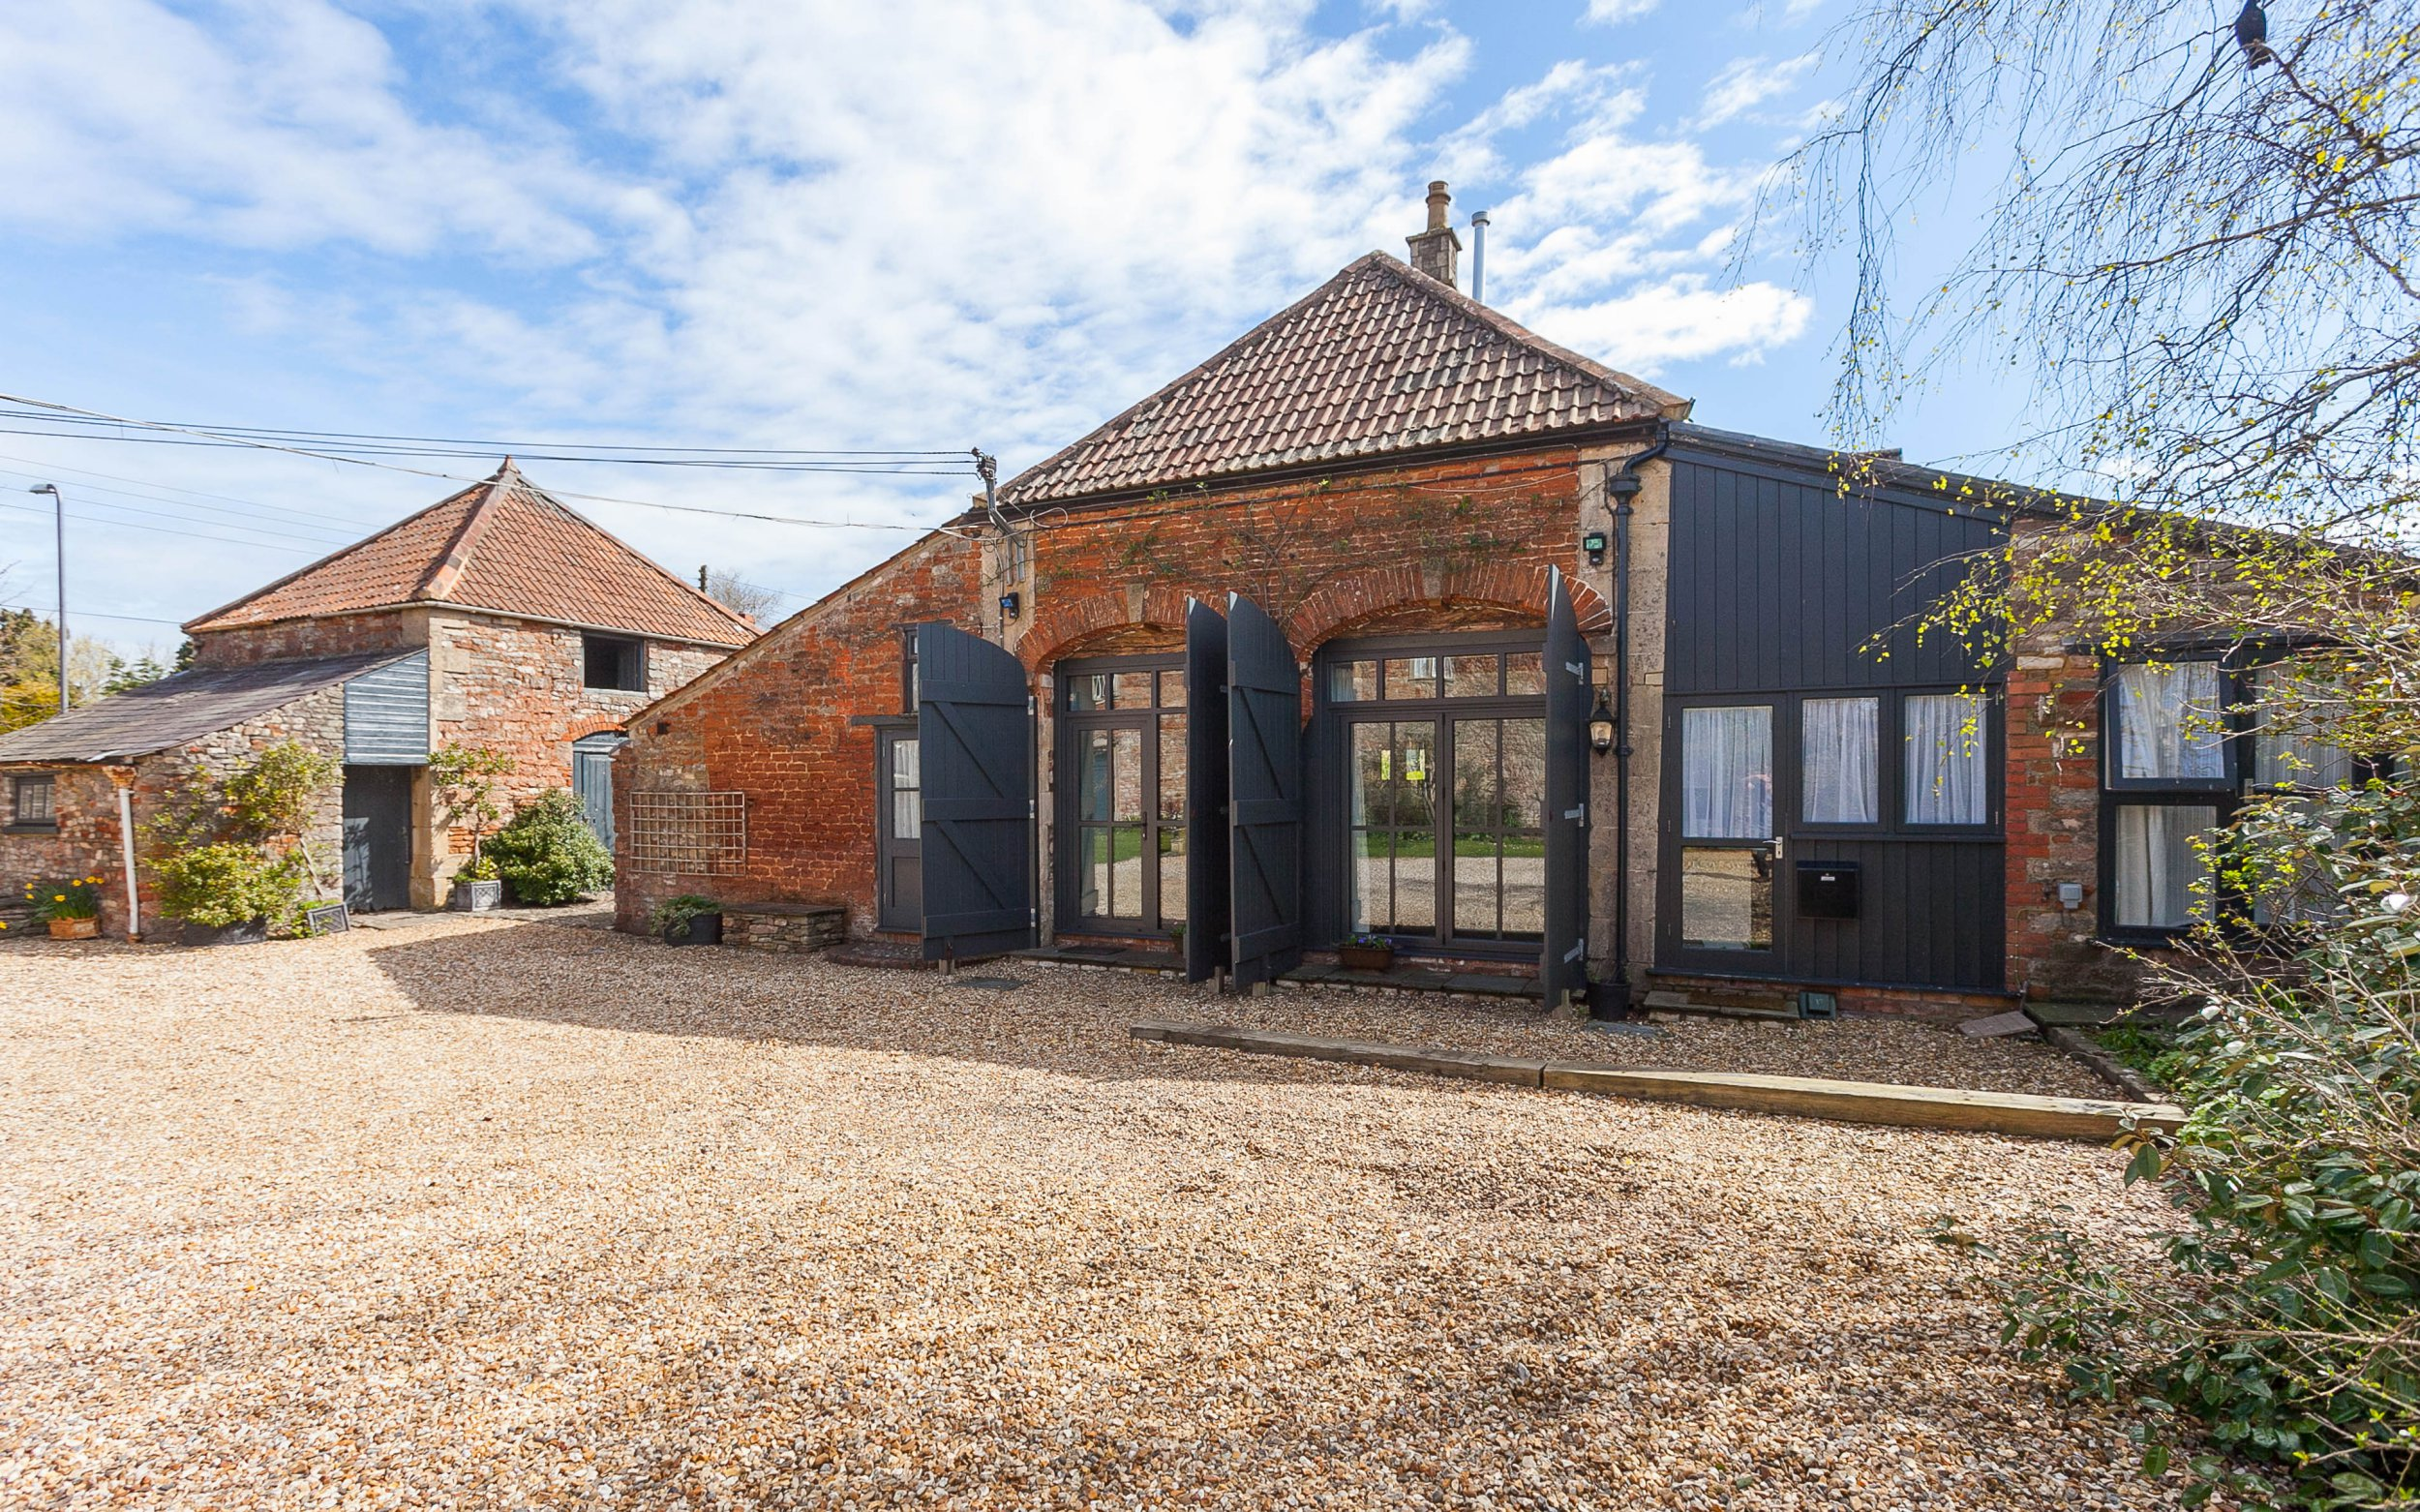 BNPS.co.uk (01202 558833) Picture: LodestoneProperty/BNPS A 300-year-old home that has hosted royalty and been a cattle market before it became a successful B&B is now on the market for ?950,000. The Old Parsonage was built in 1680 and when the house was owned by the Duchy of Cornwall for 200 years both Edward VIII and George VI stayed there while on royal duties in the area. The historic building in Farrington Gurney, Somerset, has also been home to clergy and a hotel and restaurant in its past.